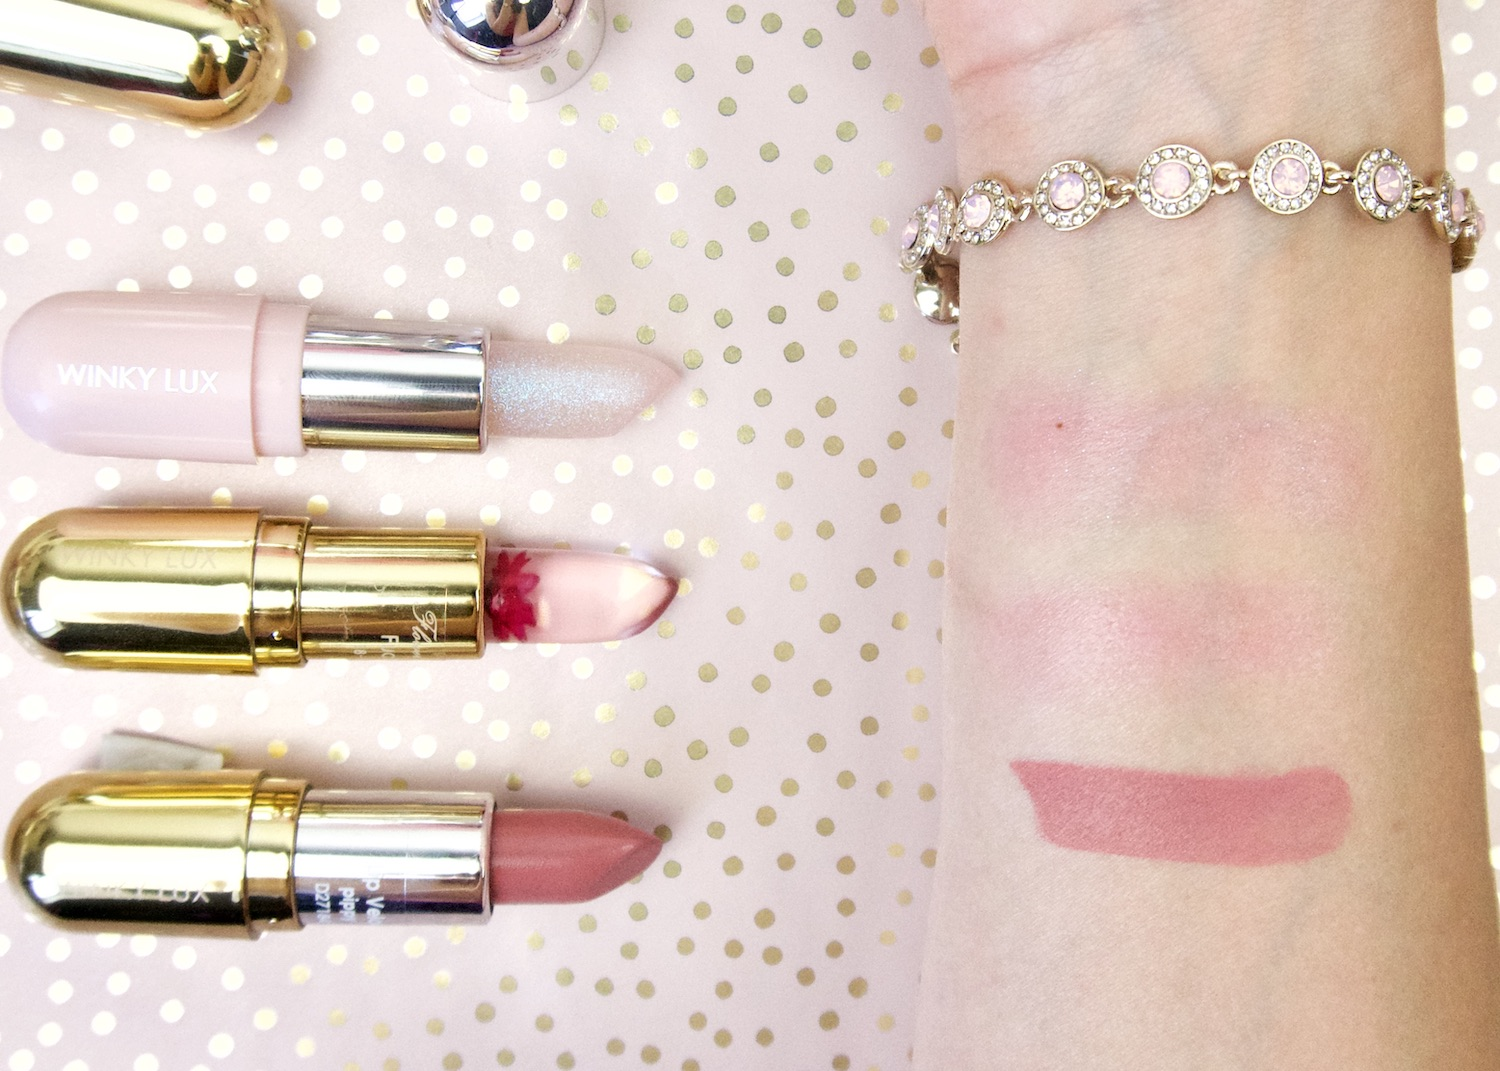 Winky Lux lip products swatches